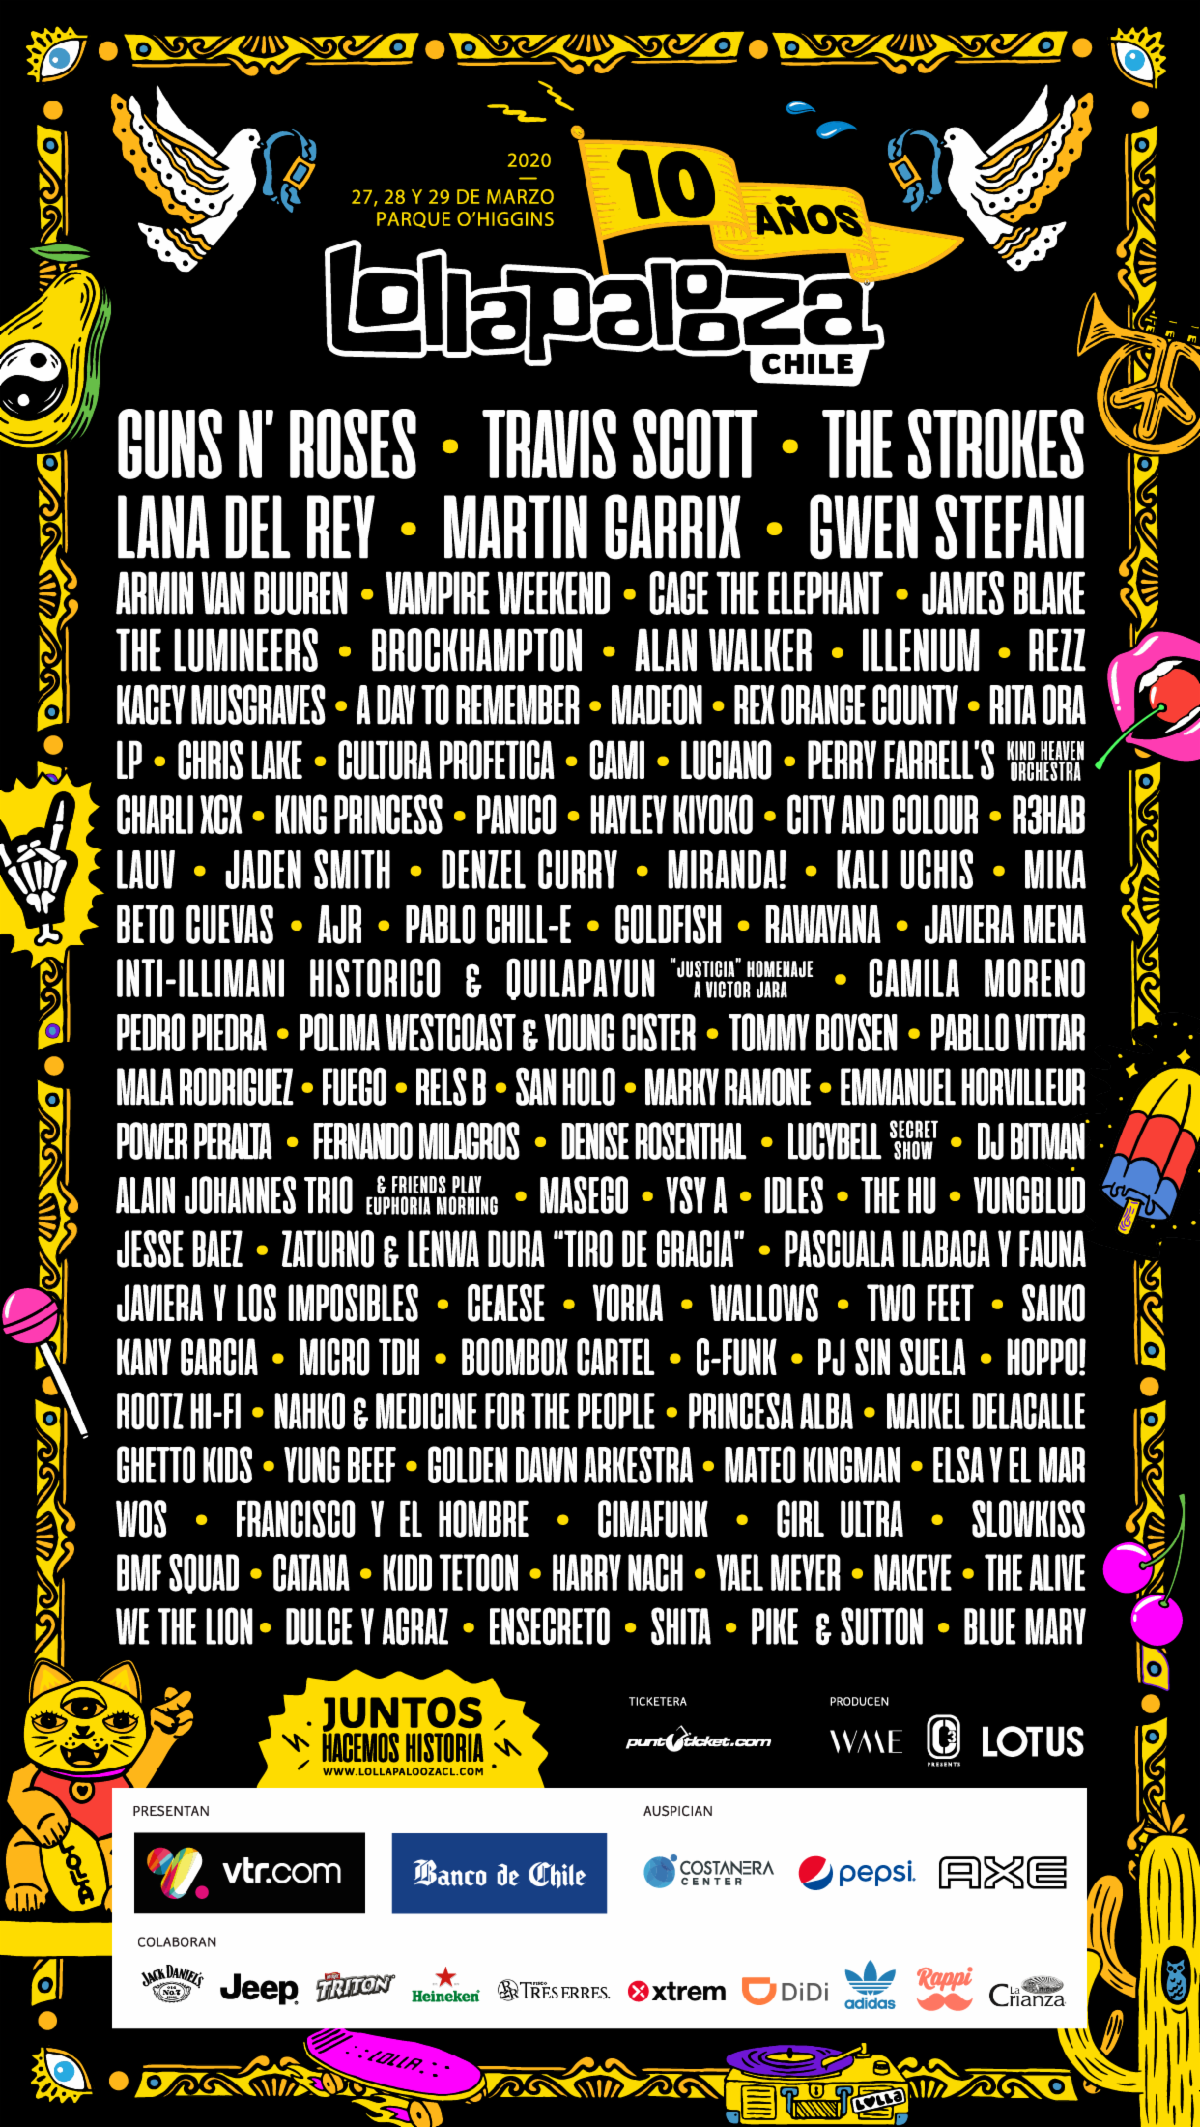 Lollapalooza Chile 2020 lineup Guns N Roses, The Strokes, Travis Scott to headline Lollapaloozas Latin American festivals